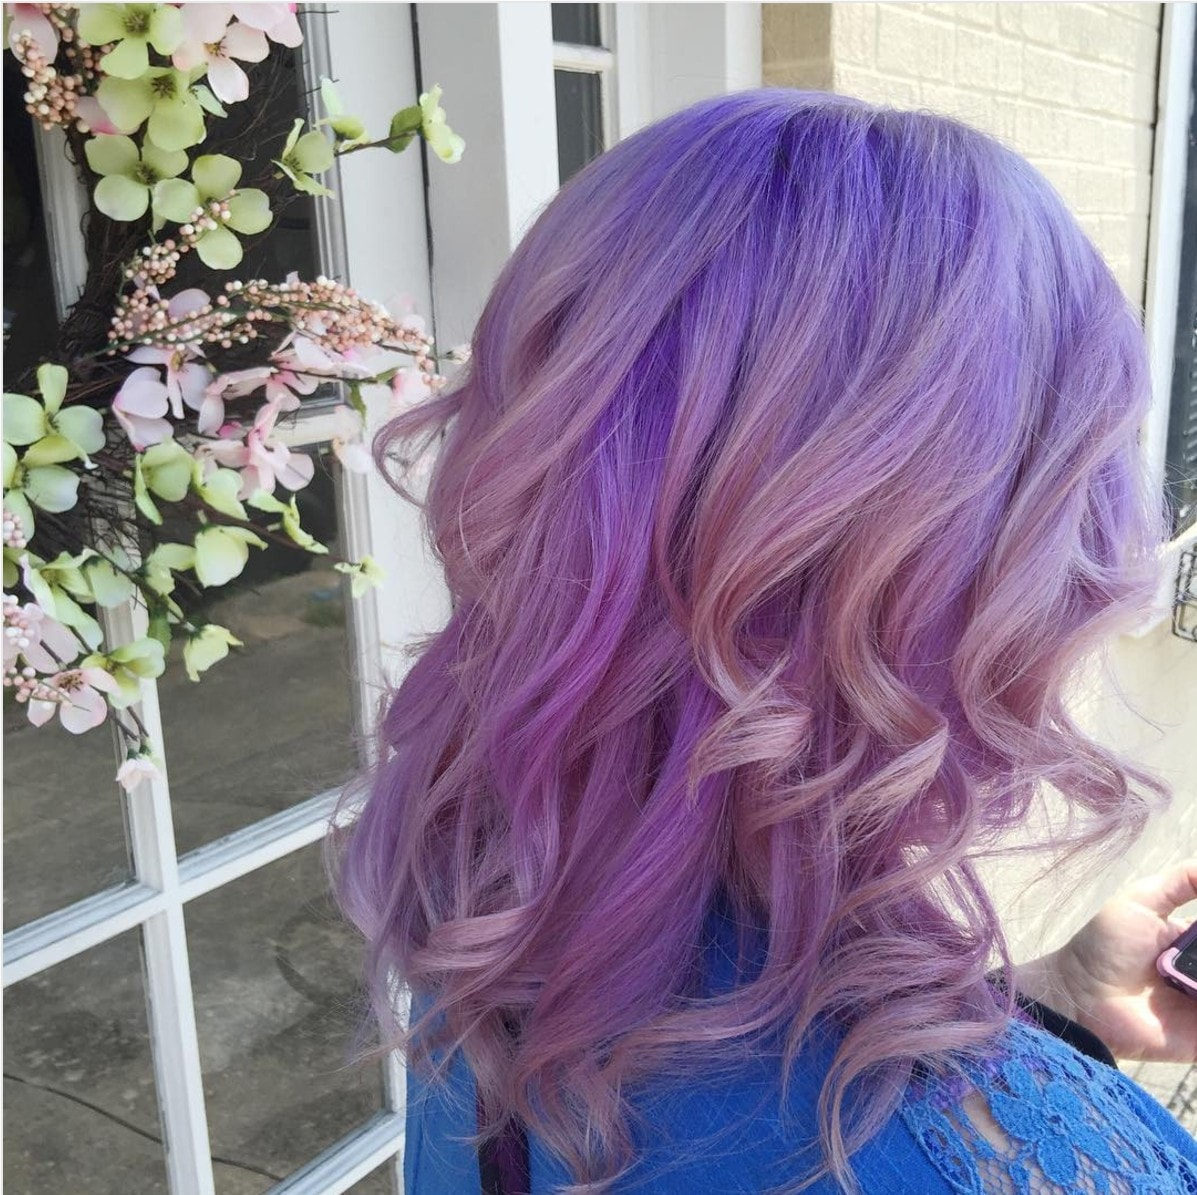 pink and purple hair ideas